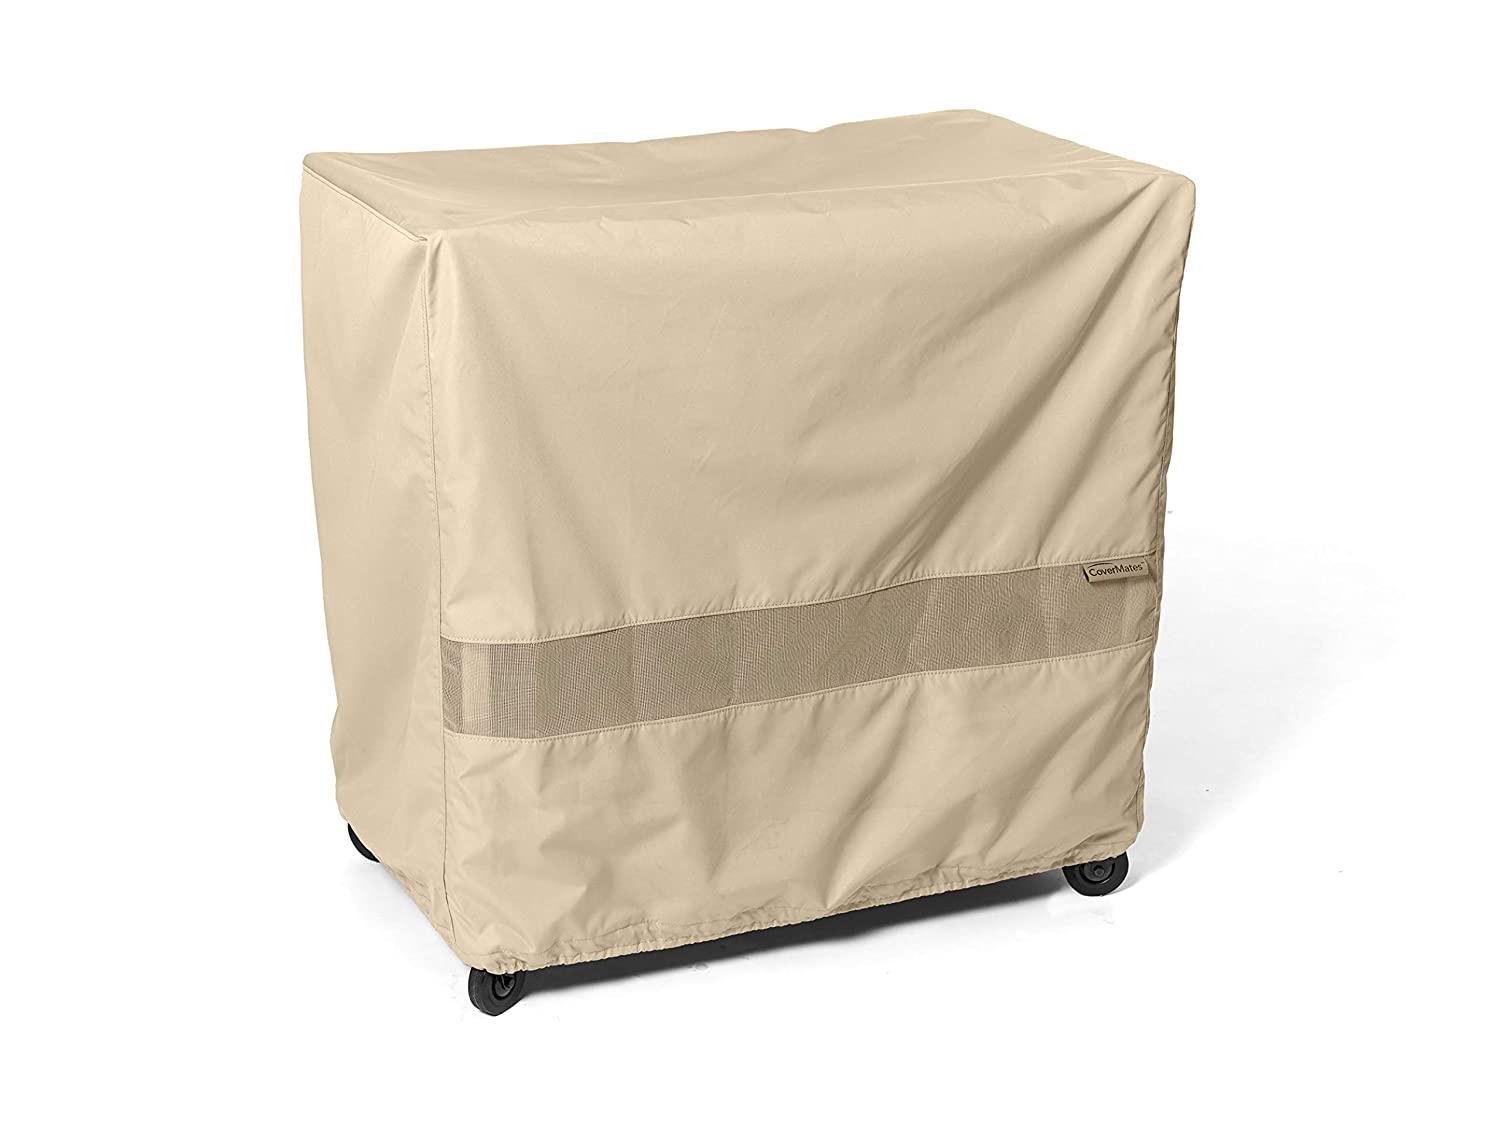 Amazon com covermates serving cart cover 50w x 30d x 34h elite collection 3 yr warranty year around protection khaki patio furniture set